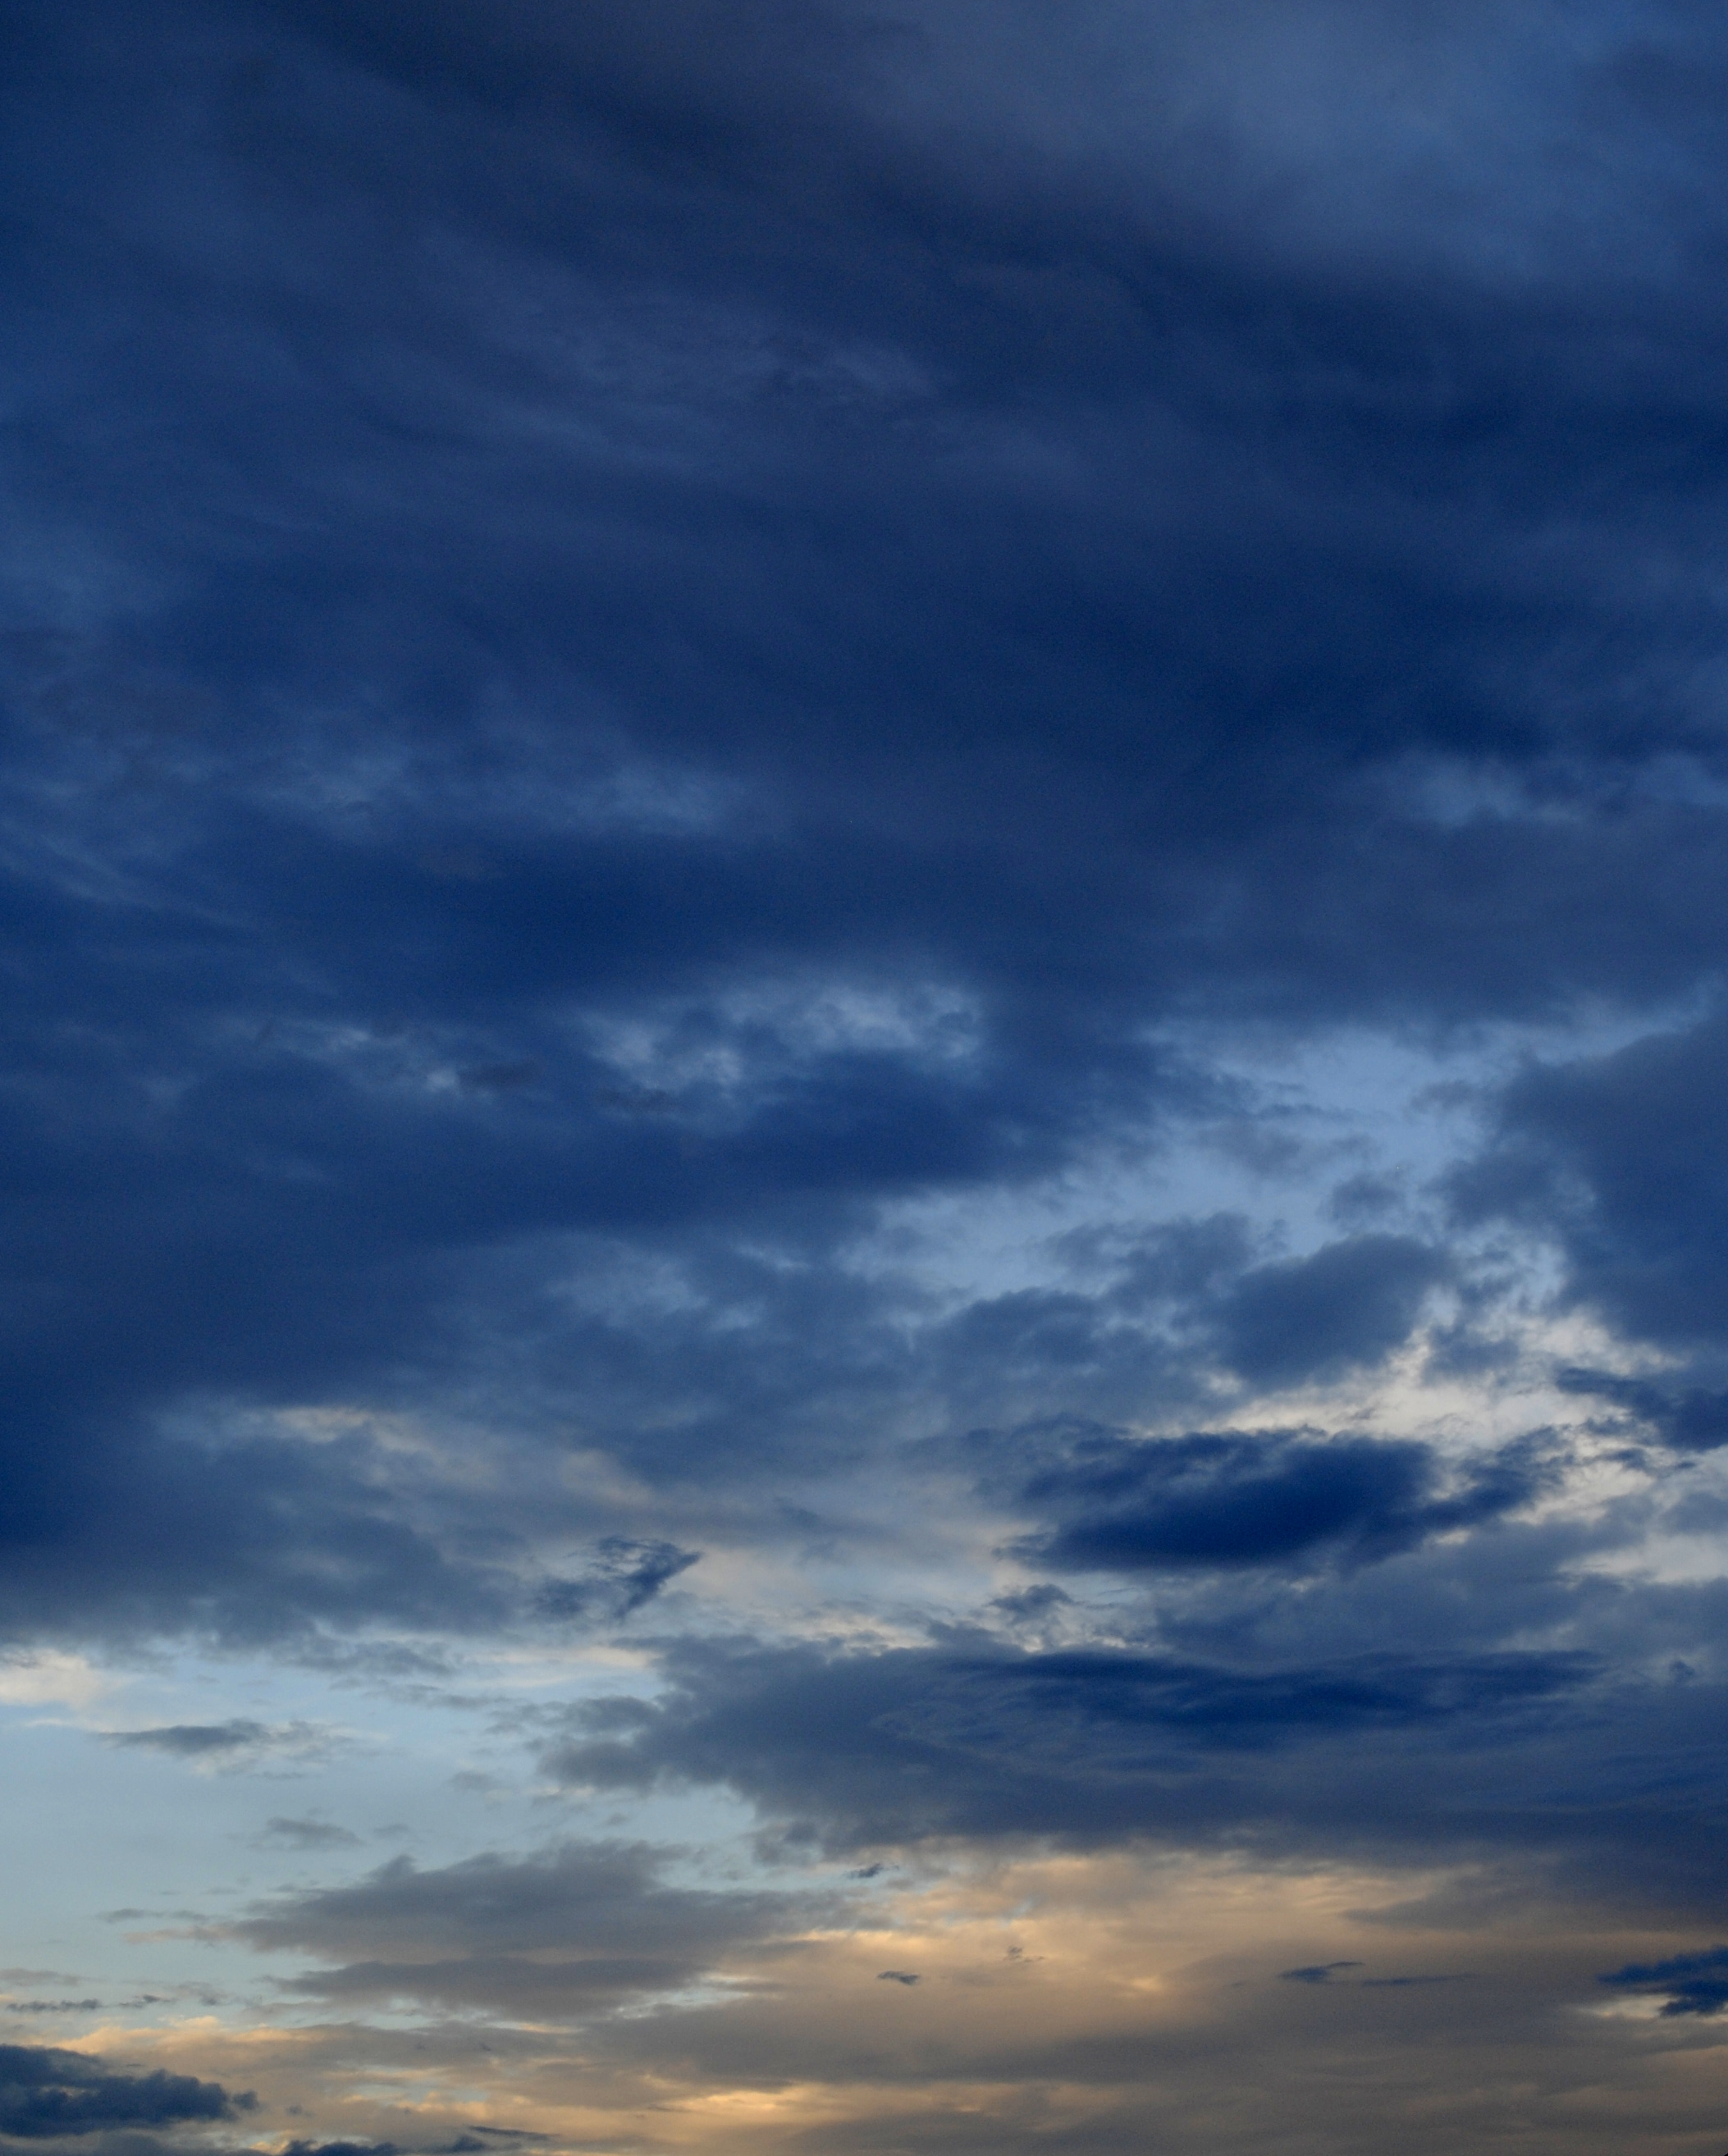 Evening Sky by LydiaTremont